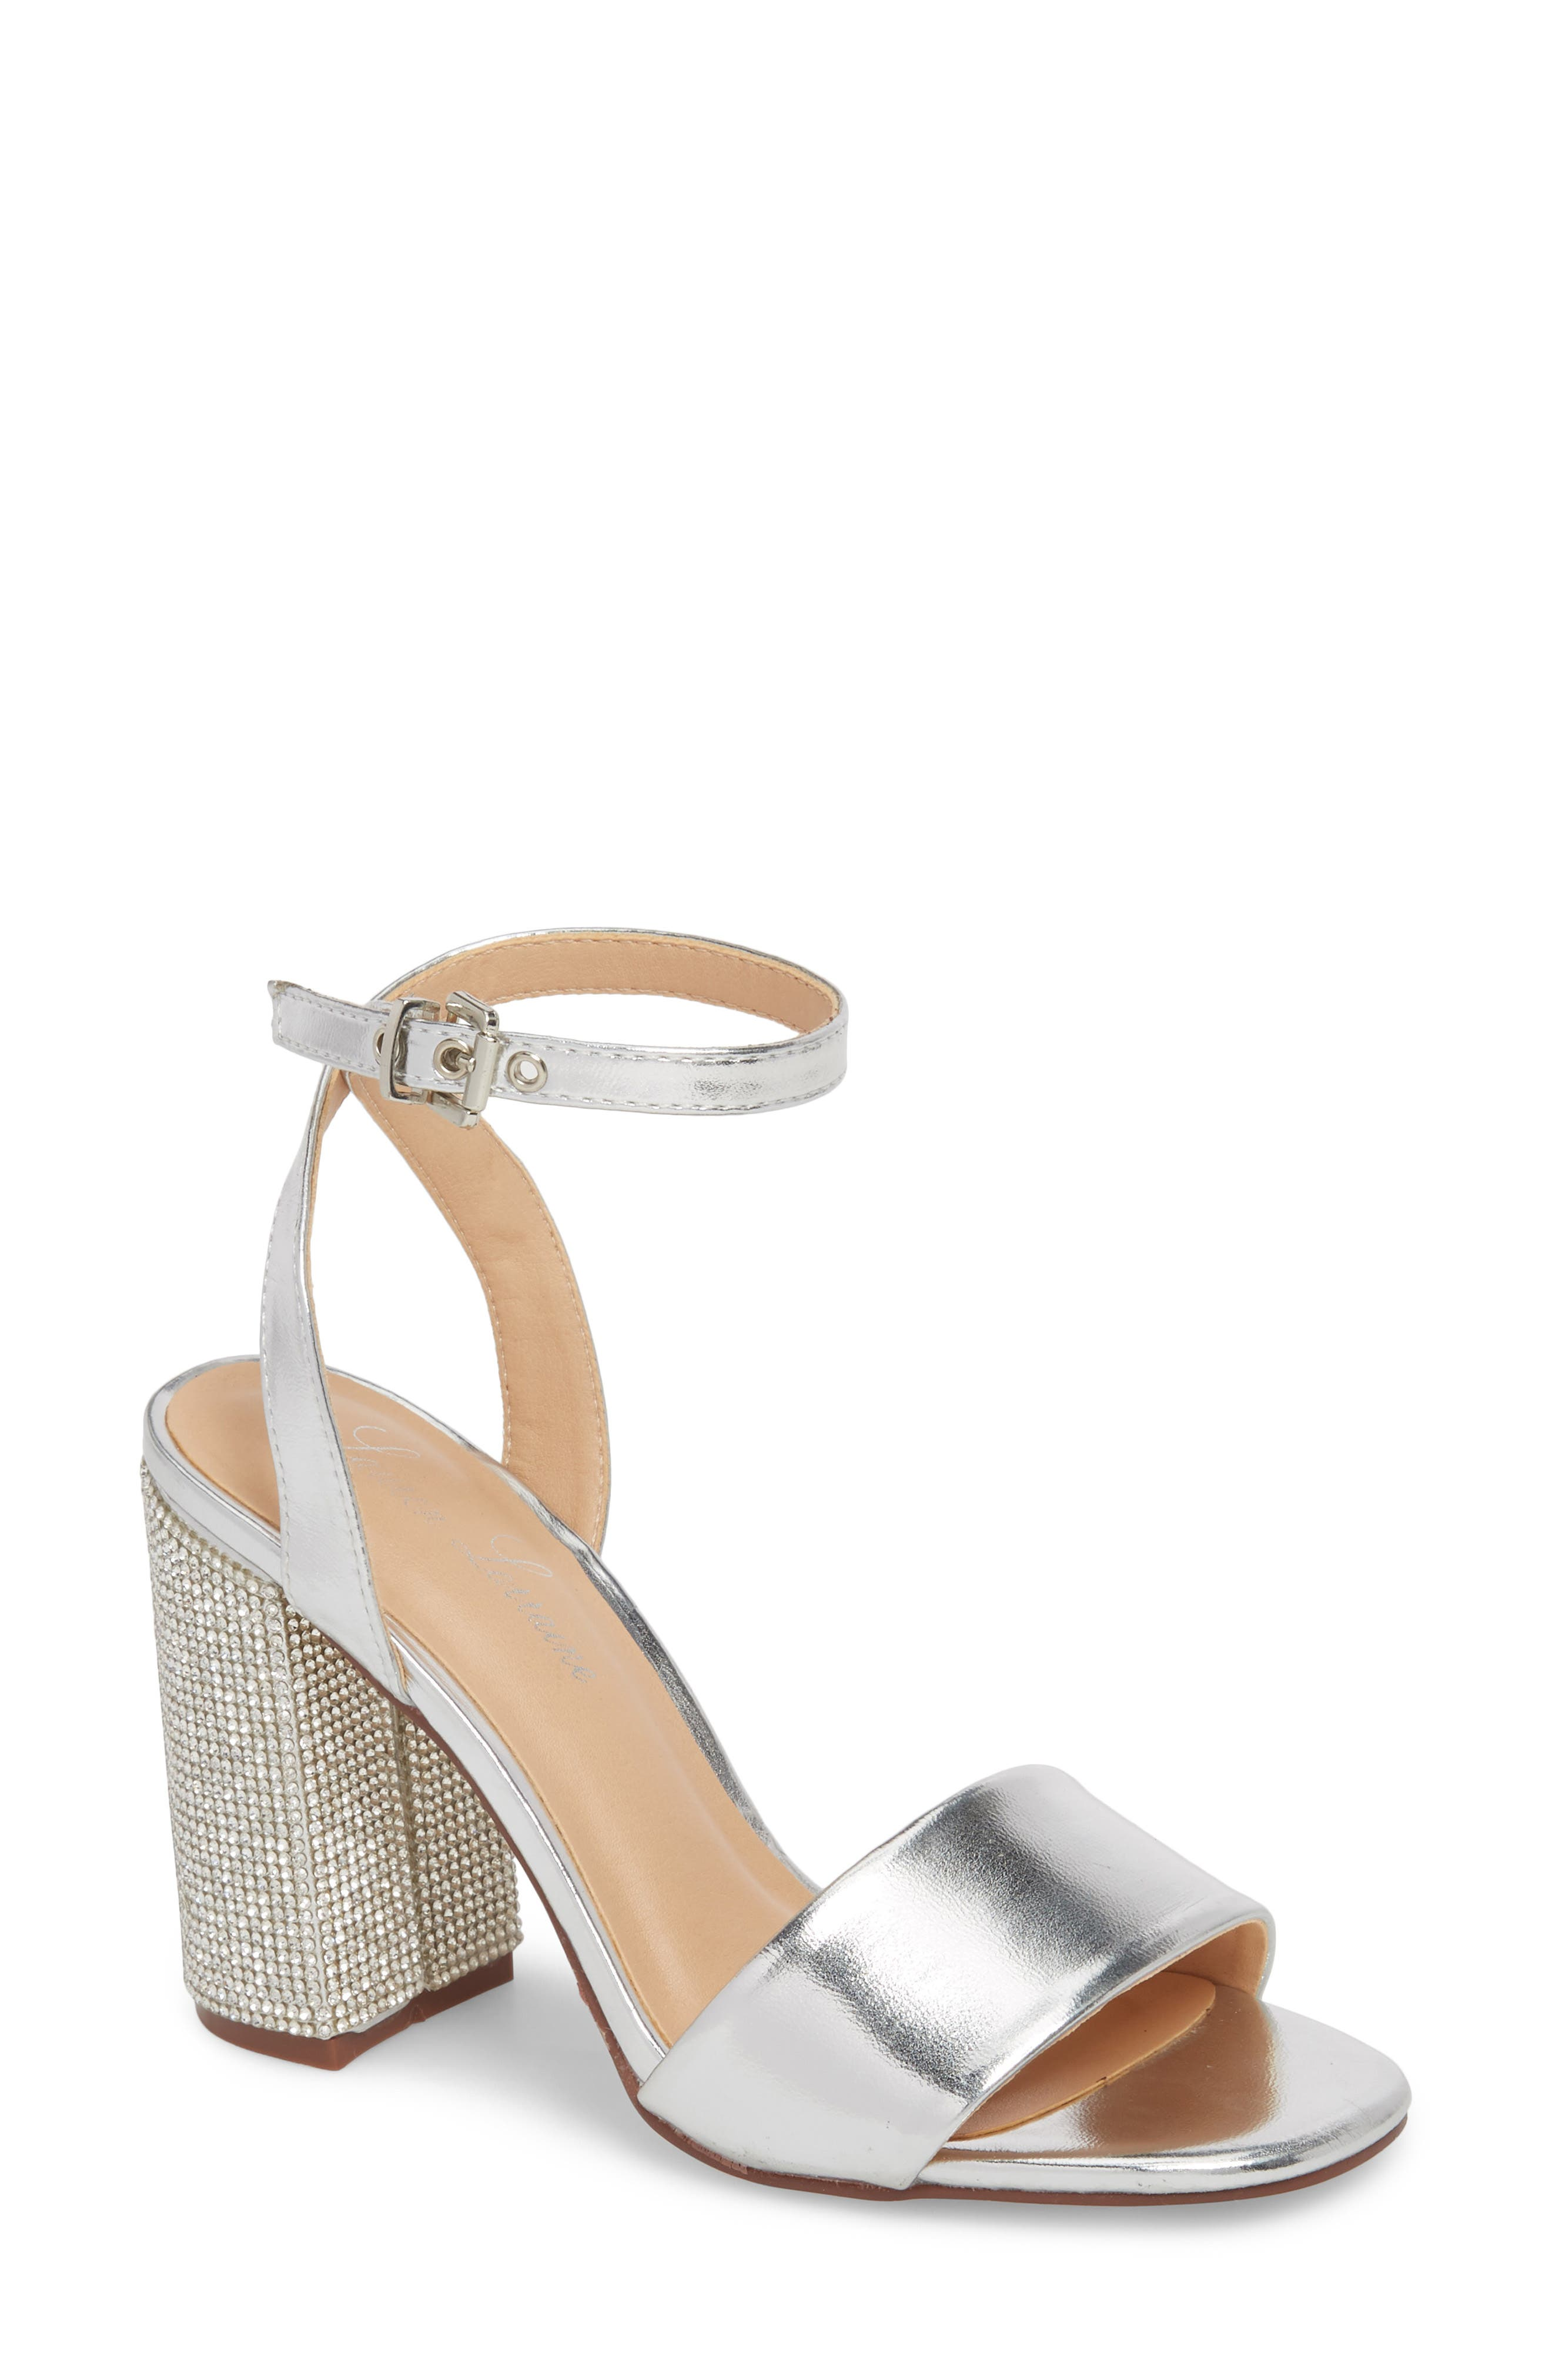 Julia Sandal,                         Main,                         color, Silver Faux Leather